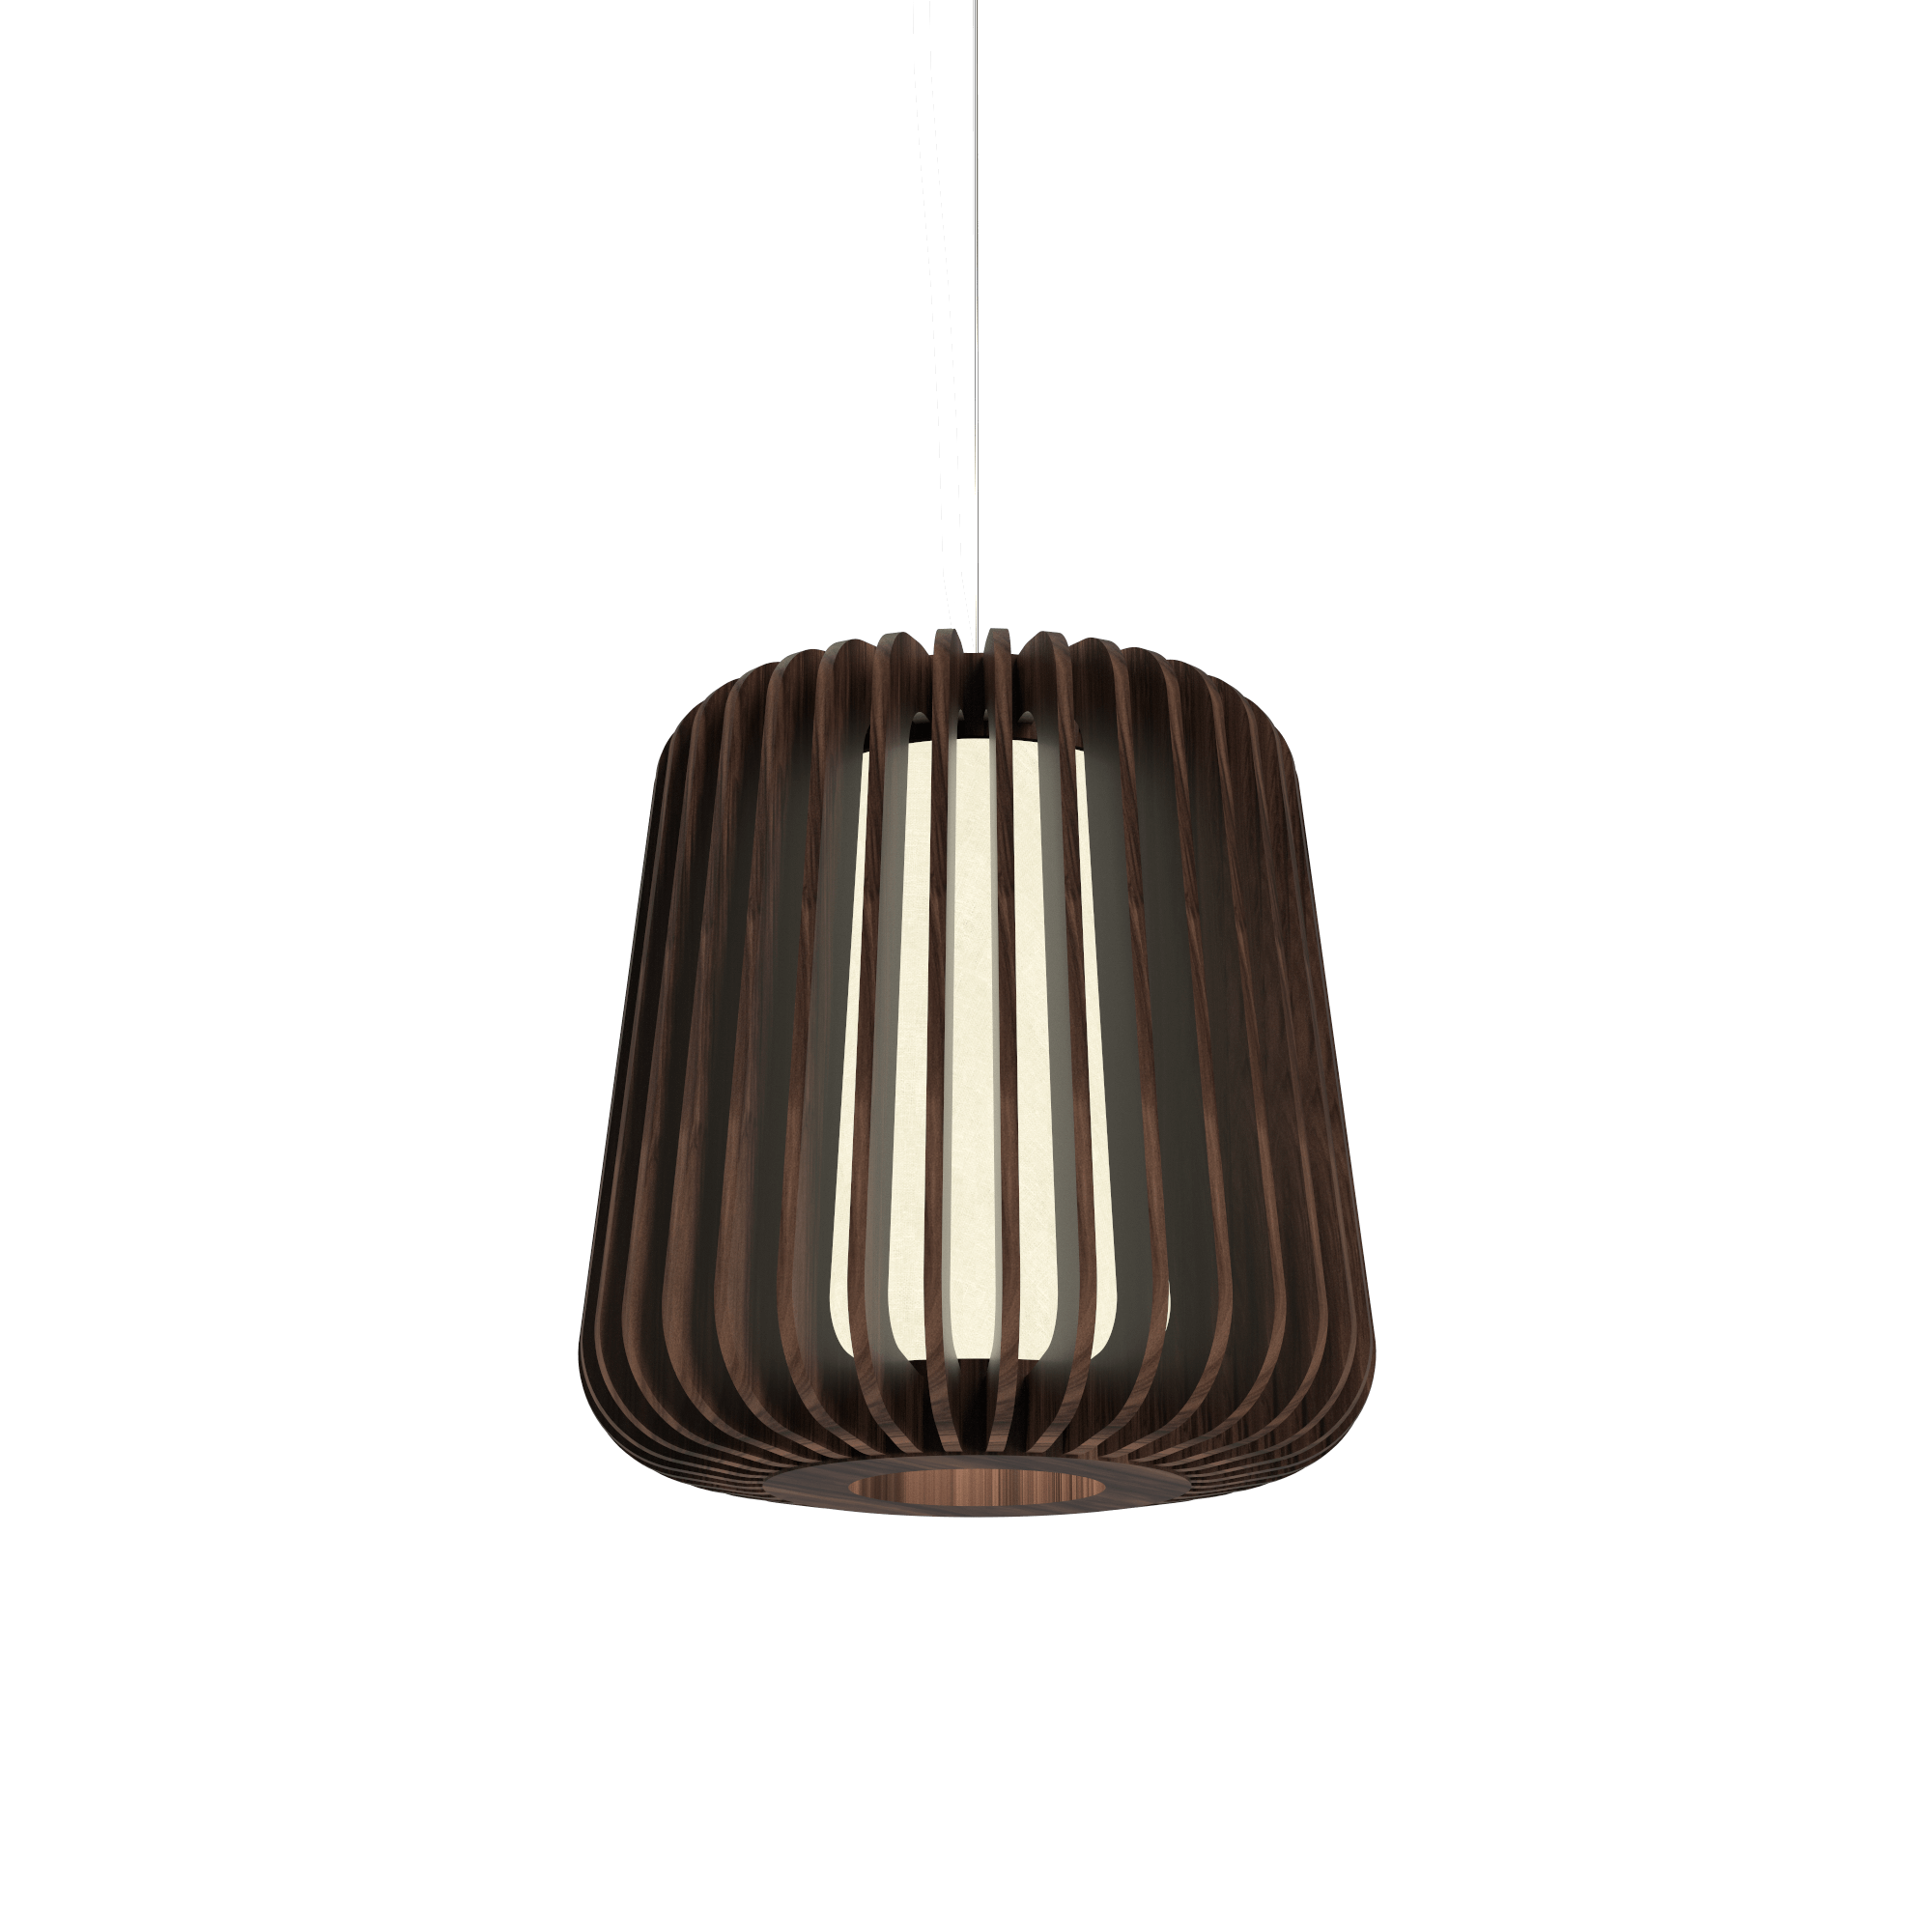 Pendant Lamp Accord Stecche Di Legno 1426 - Stecche Di Legno Line Accord Lighting | 18. American Walnut